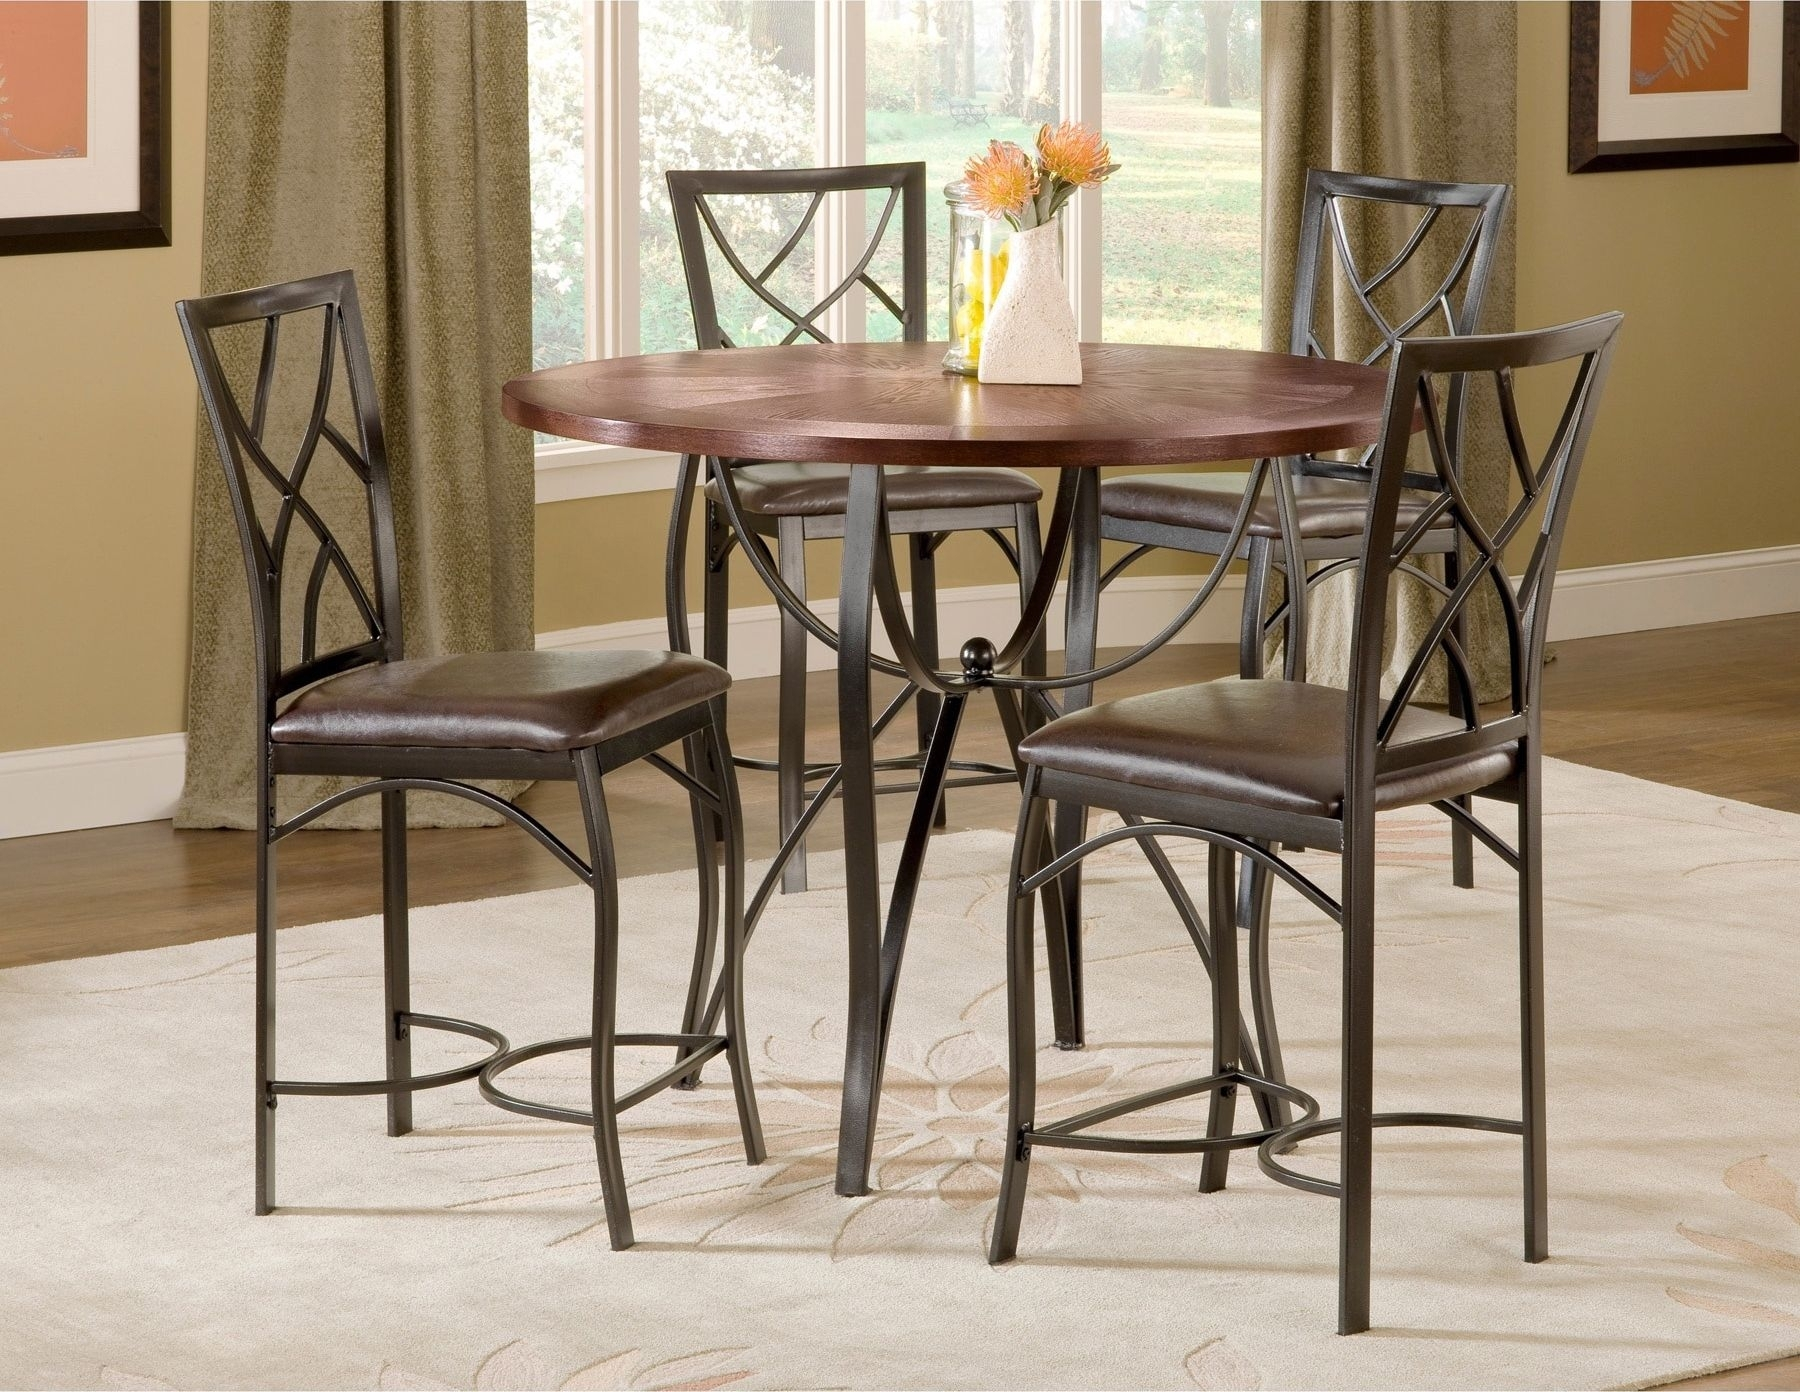 Sanford Merlot 5 Piece Counter Height Table And 4 Chairs Black Metal Throughout Best And Newest Jaxon 5 Piece Extension Counter Sets With Fabric Stools (Photo 12 of 20)